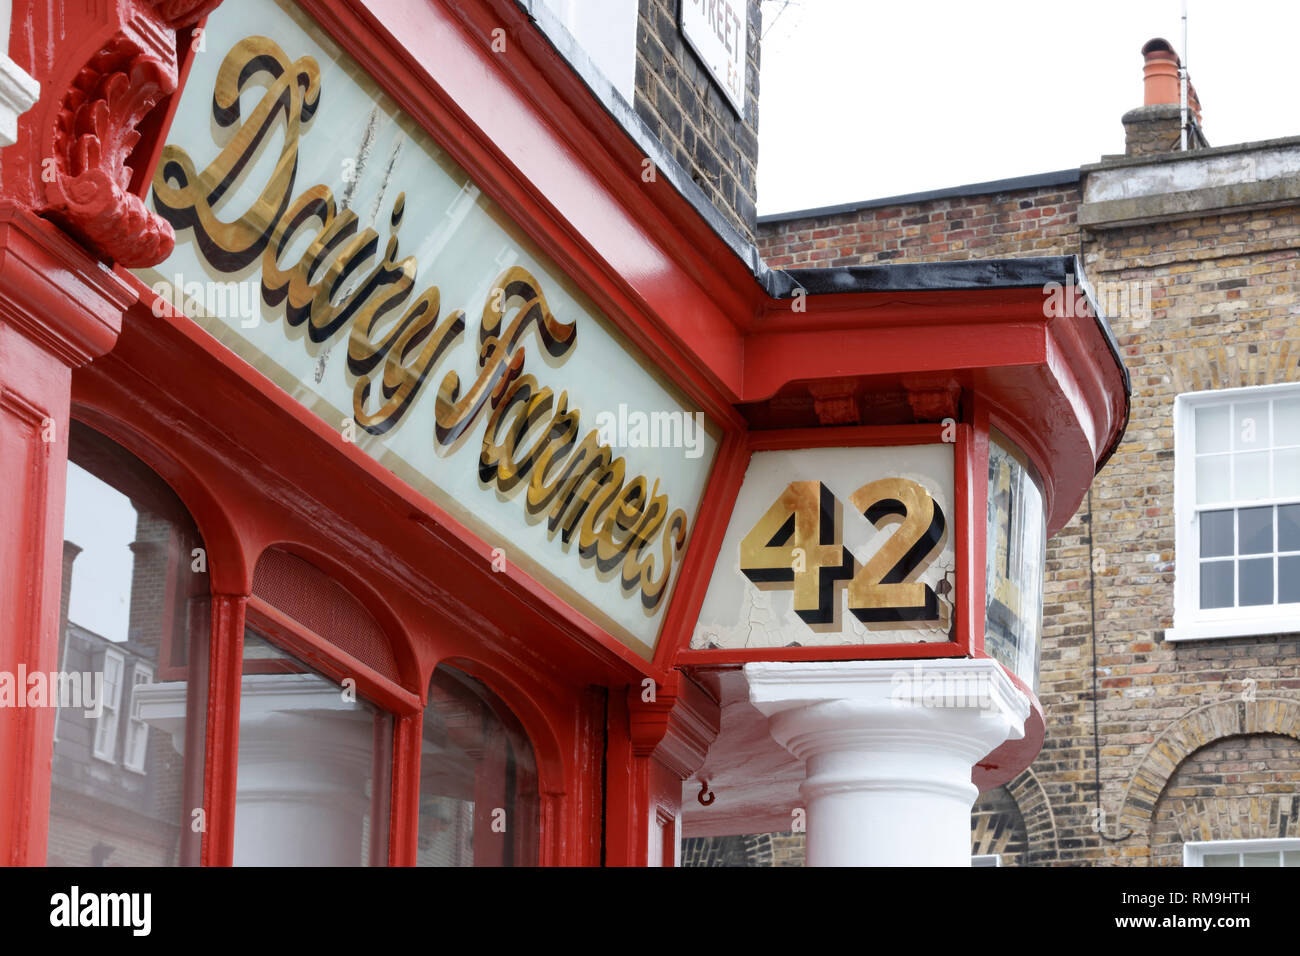 Facade of the old Lloyd & Son Welsh dairy on the corner of Amwell Street and River Street, Finsbury, London, UK - Stock Image